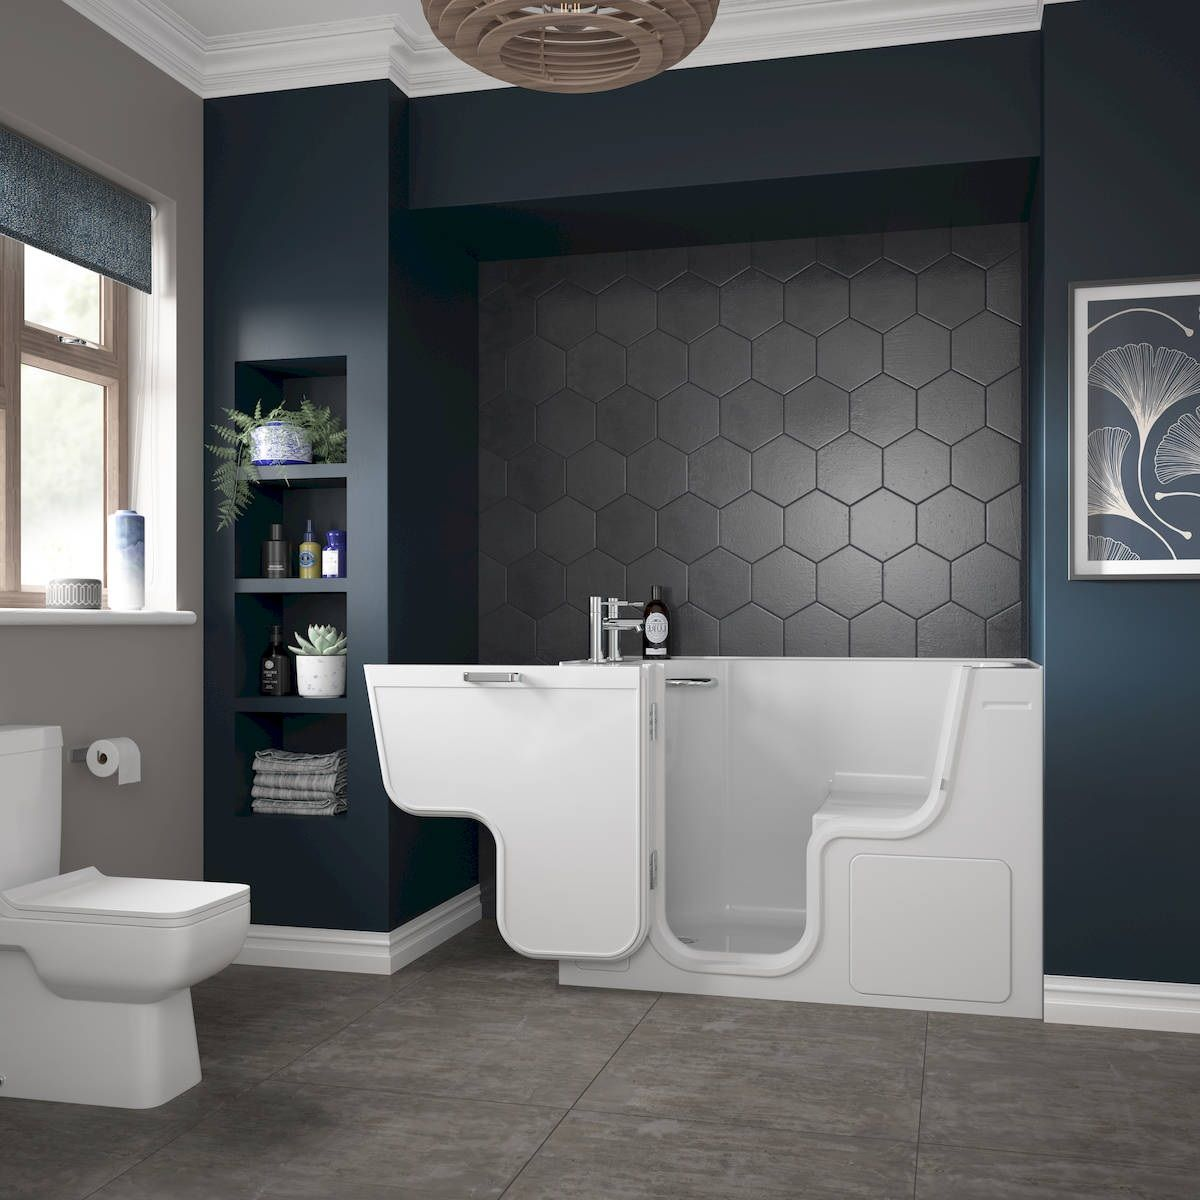 batheeasyserenitywalkinbath1300x750lefthand